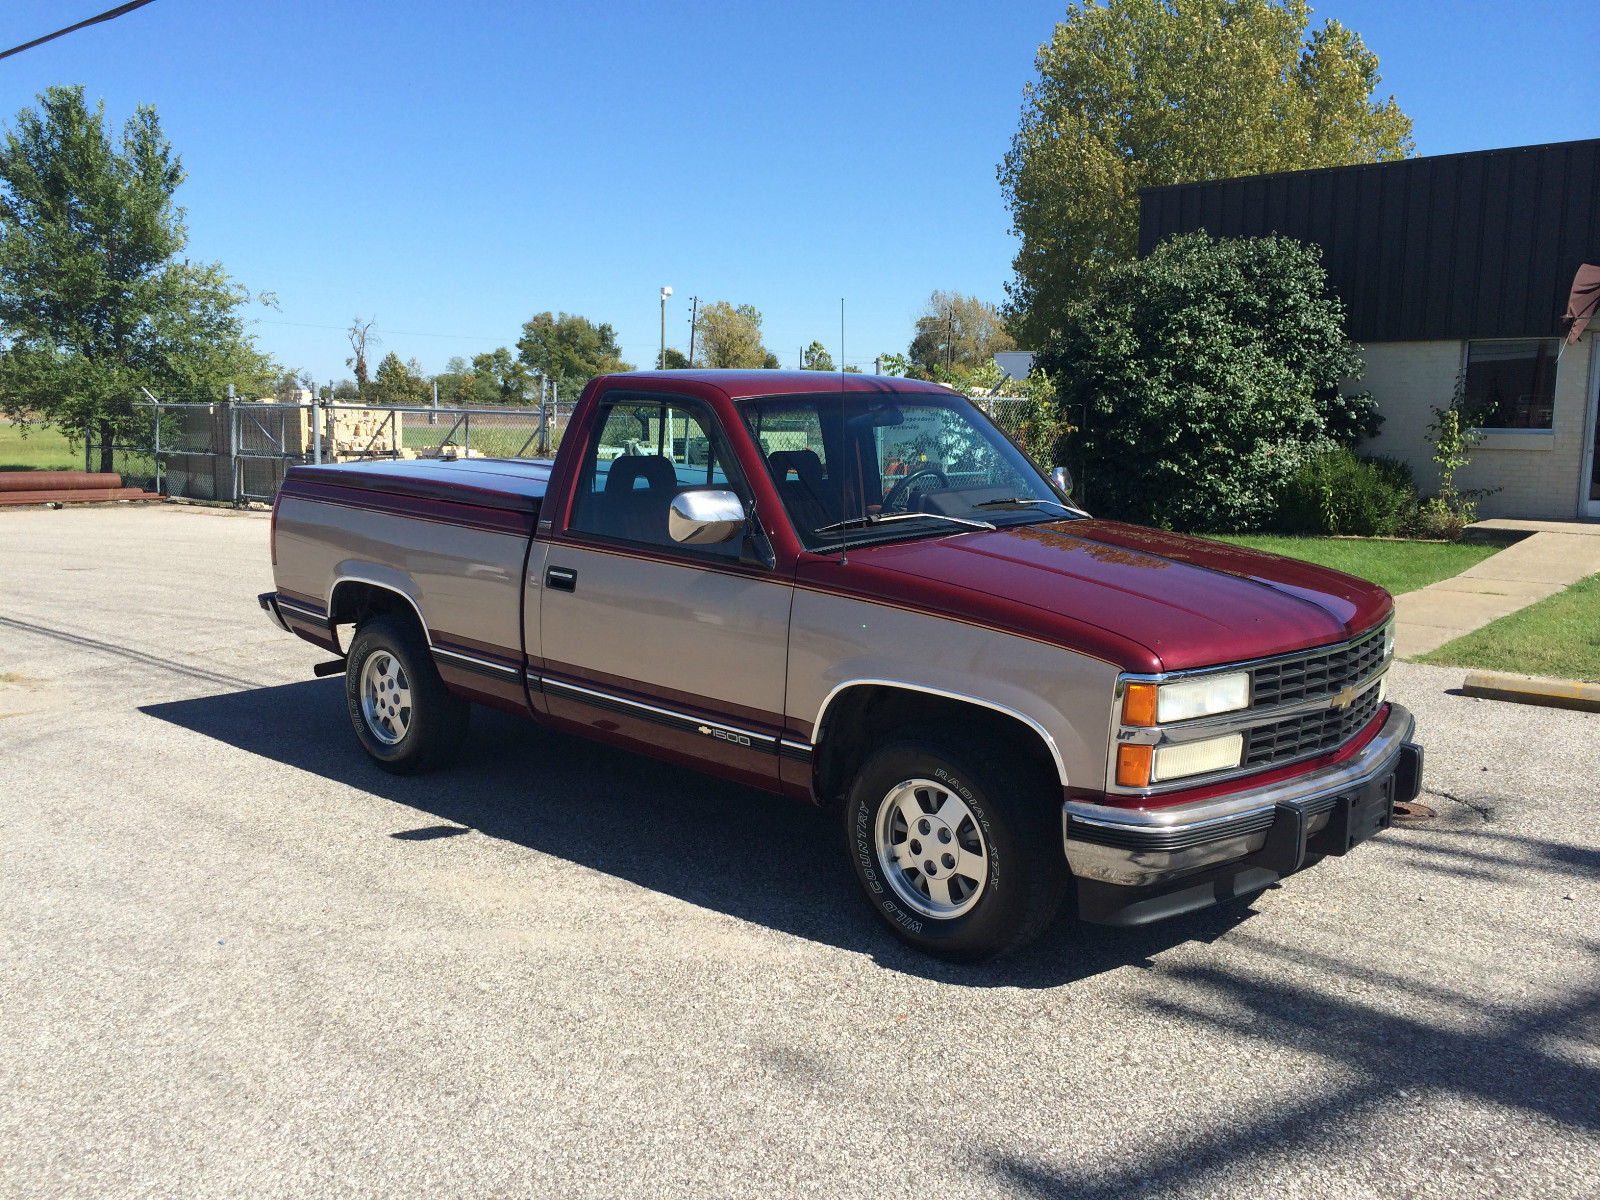 1993 chevrolet silverado v8 short bed street rod hot rod 1500 clean. Black Bedroom Furniture Sets. Home Design Ideas